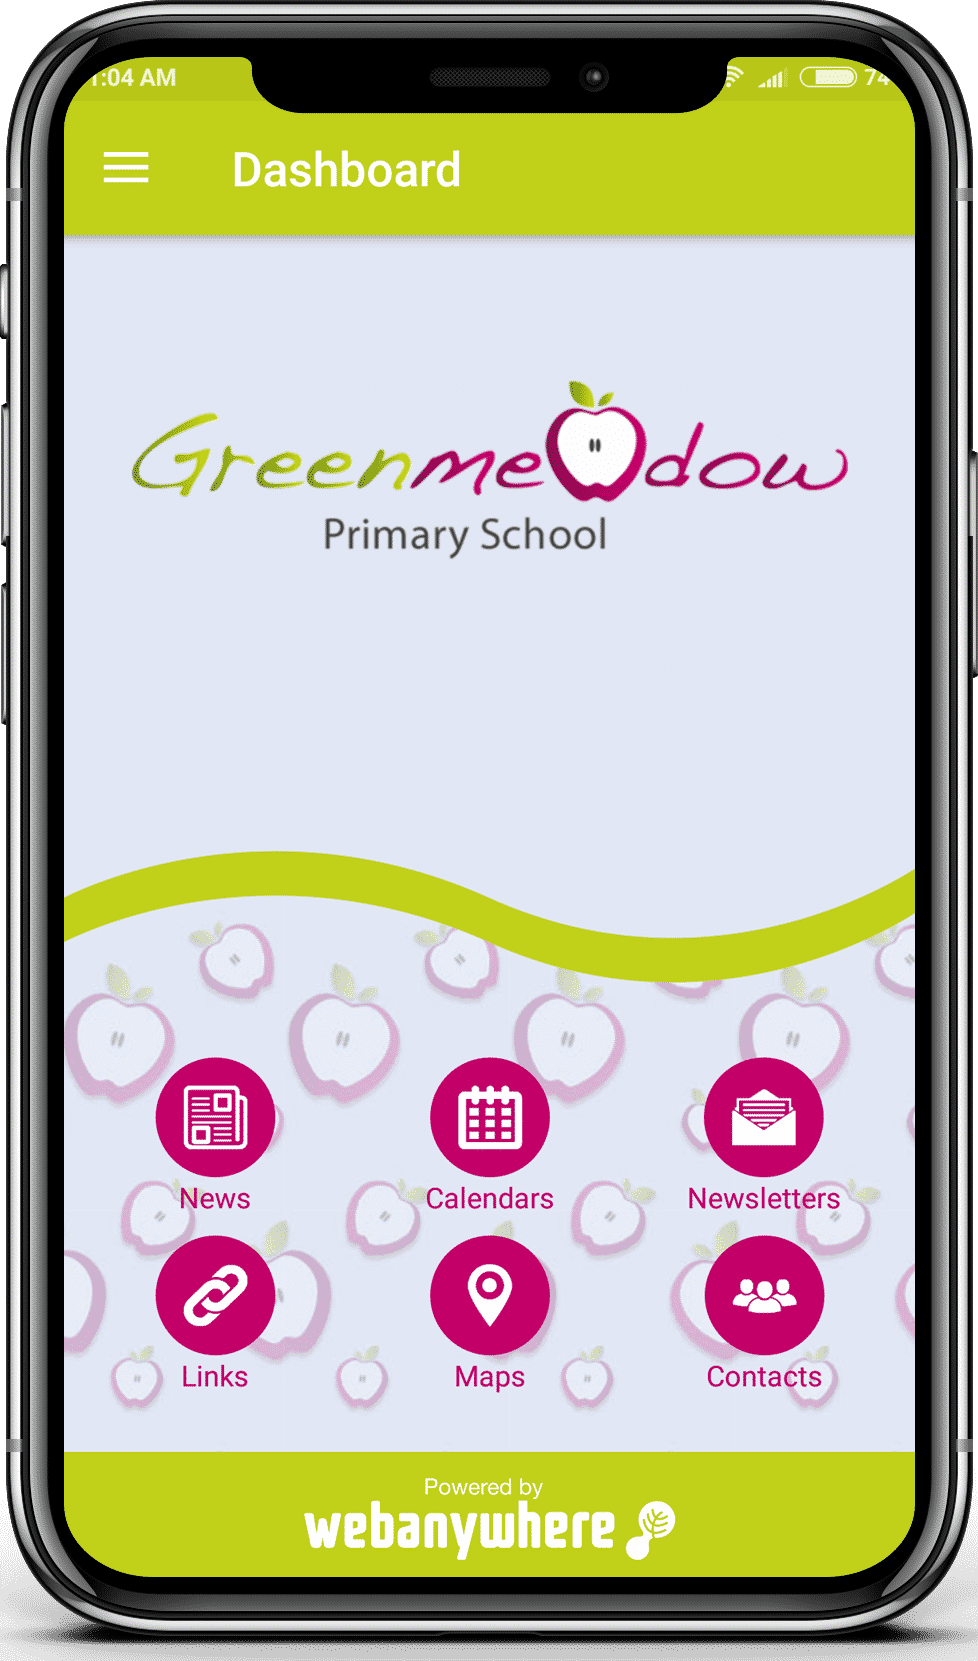 Greenmeadow mobile app